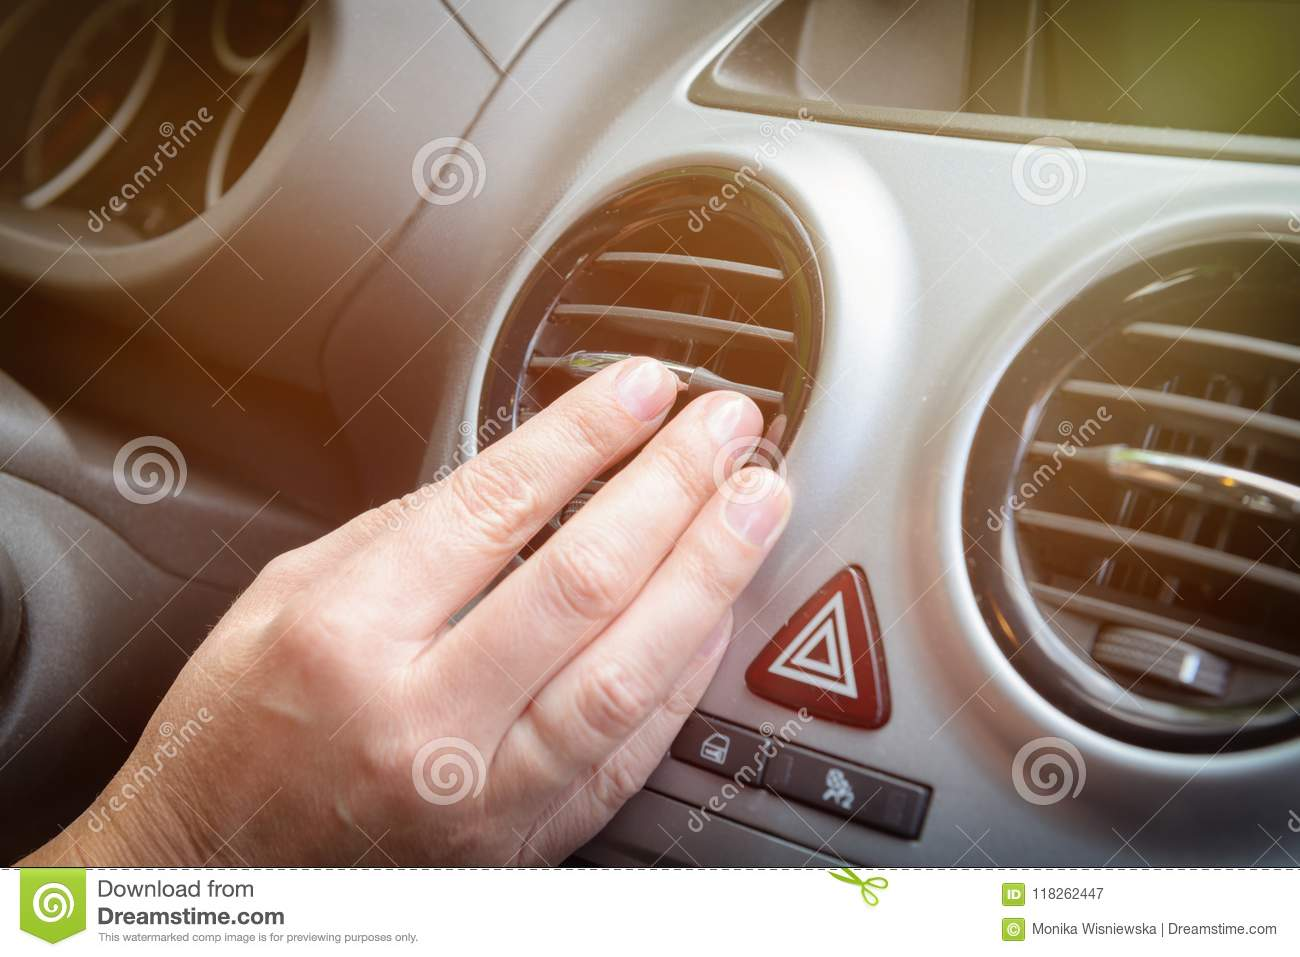 Driver Hand Tuning Air Ventilation Grille Stock Image Image Of